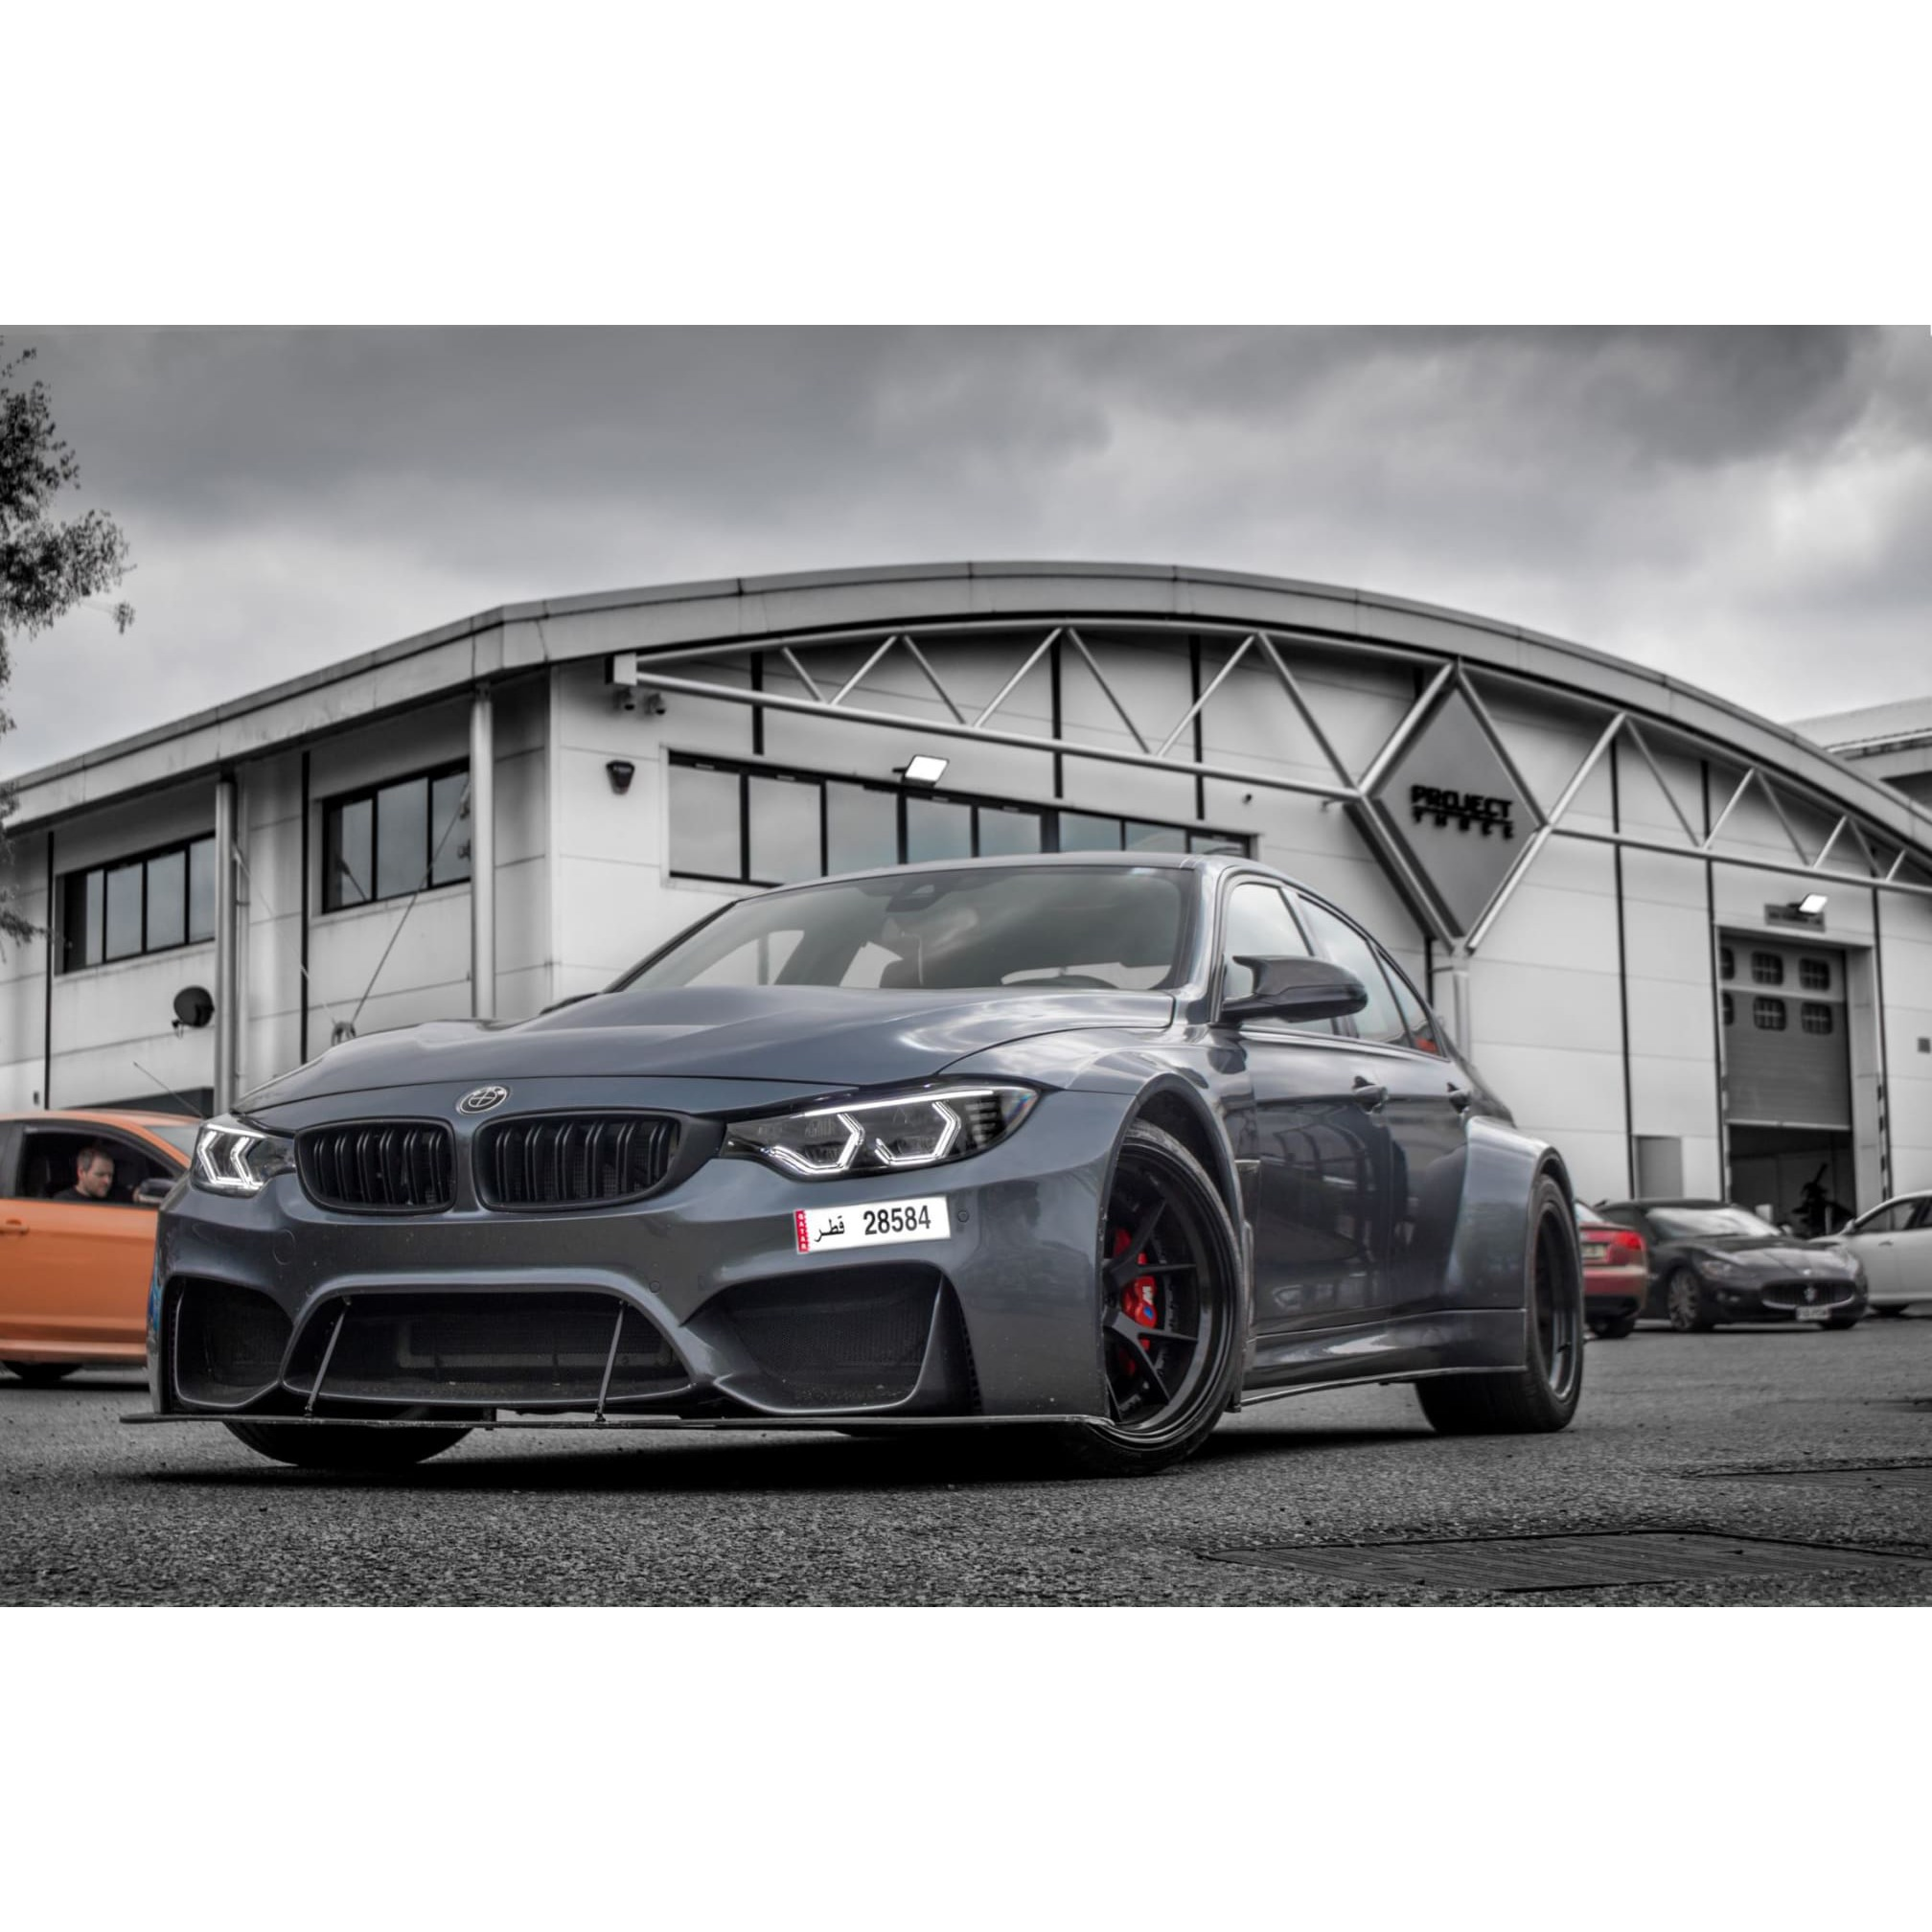 The Bavarians - Independent BMW Service Specialist - Manchester, Lancashire M17 1EJ - 01618 263371 | ShowMeLocal.com